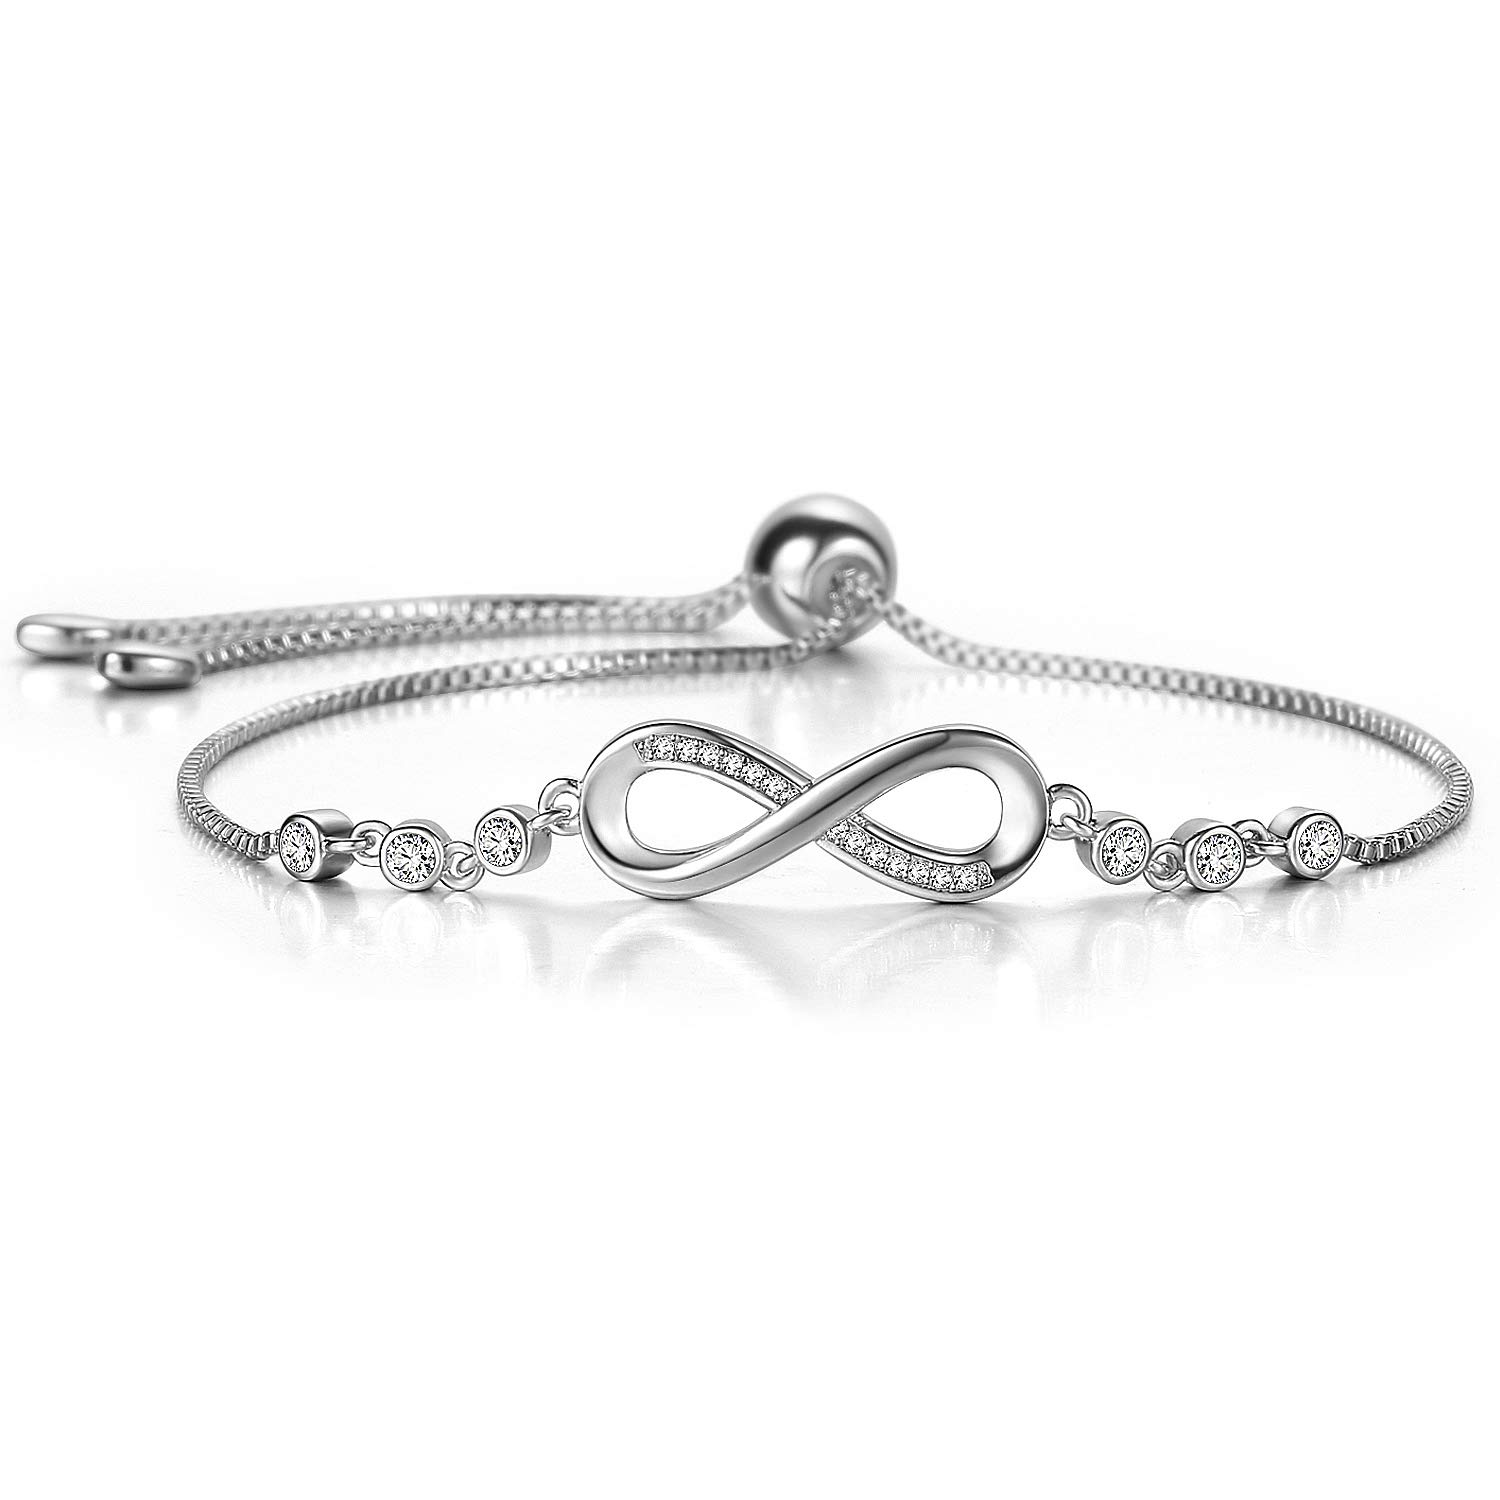 J.Fée Adjustable Sterling Silver Plated Bracelet Infinity Endless Love Charm Cubic Zirconia Bangle J.Fée FINE JEWELLERY